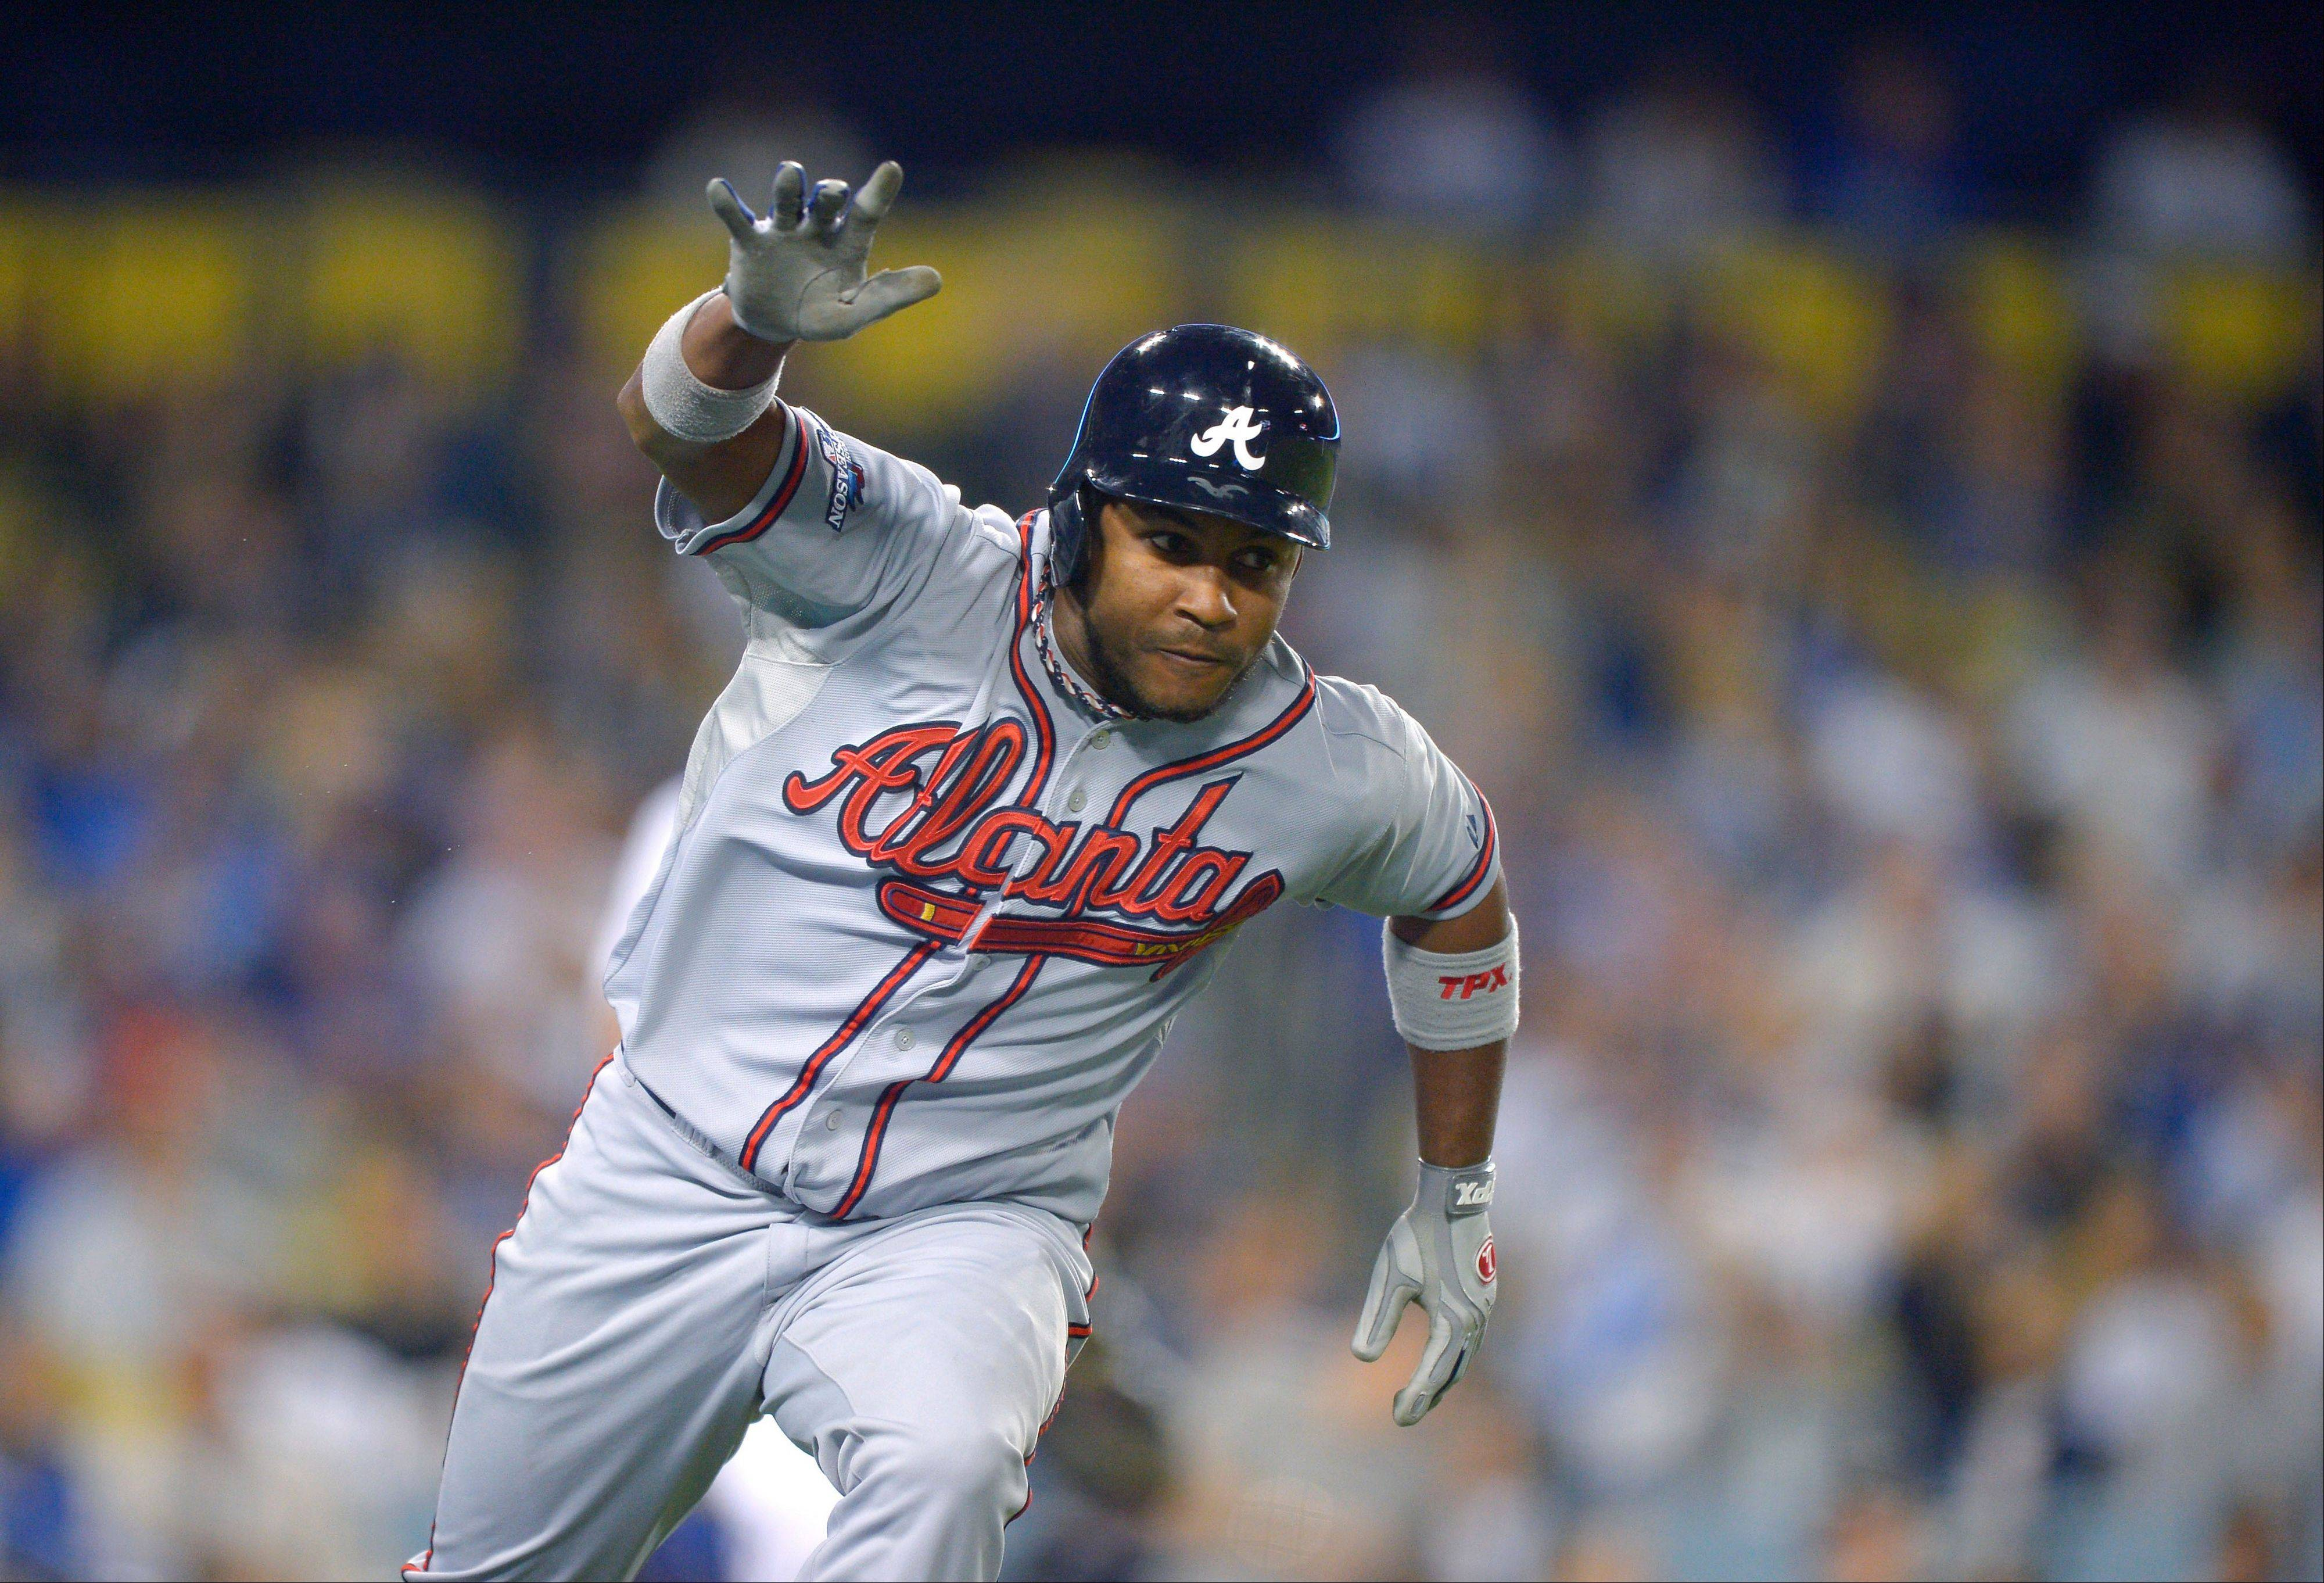 The Braves' Jose Constanza runs to first after hitting a single to score Elliot Johnson in the seventh inning of Game 4 Monday night in Los Angeles.